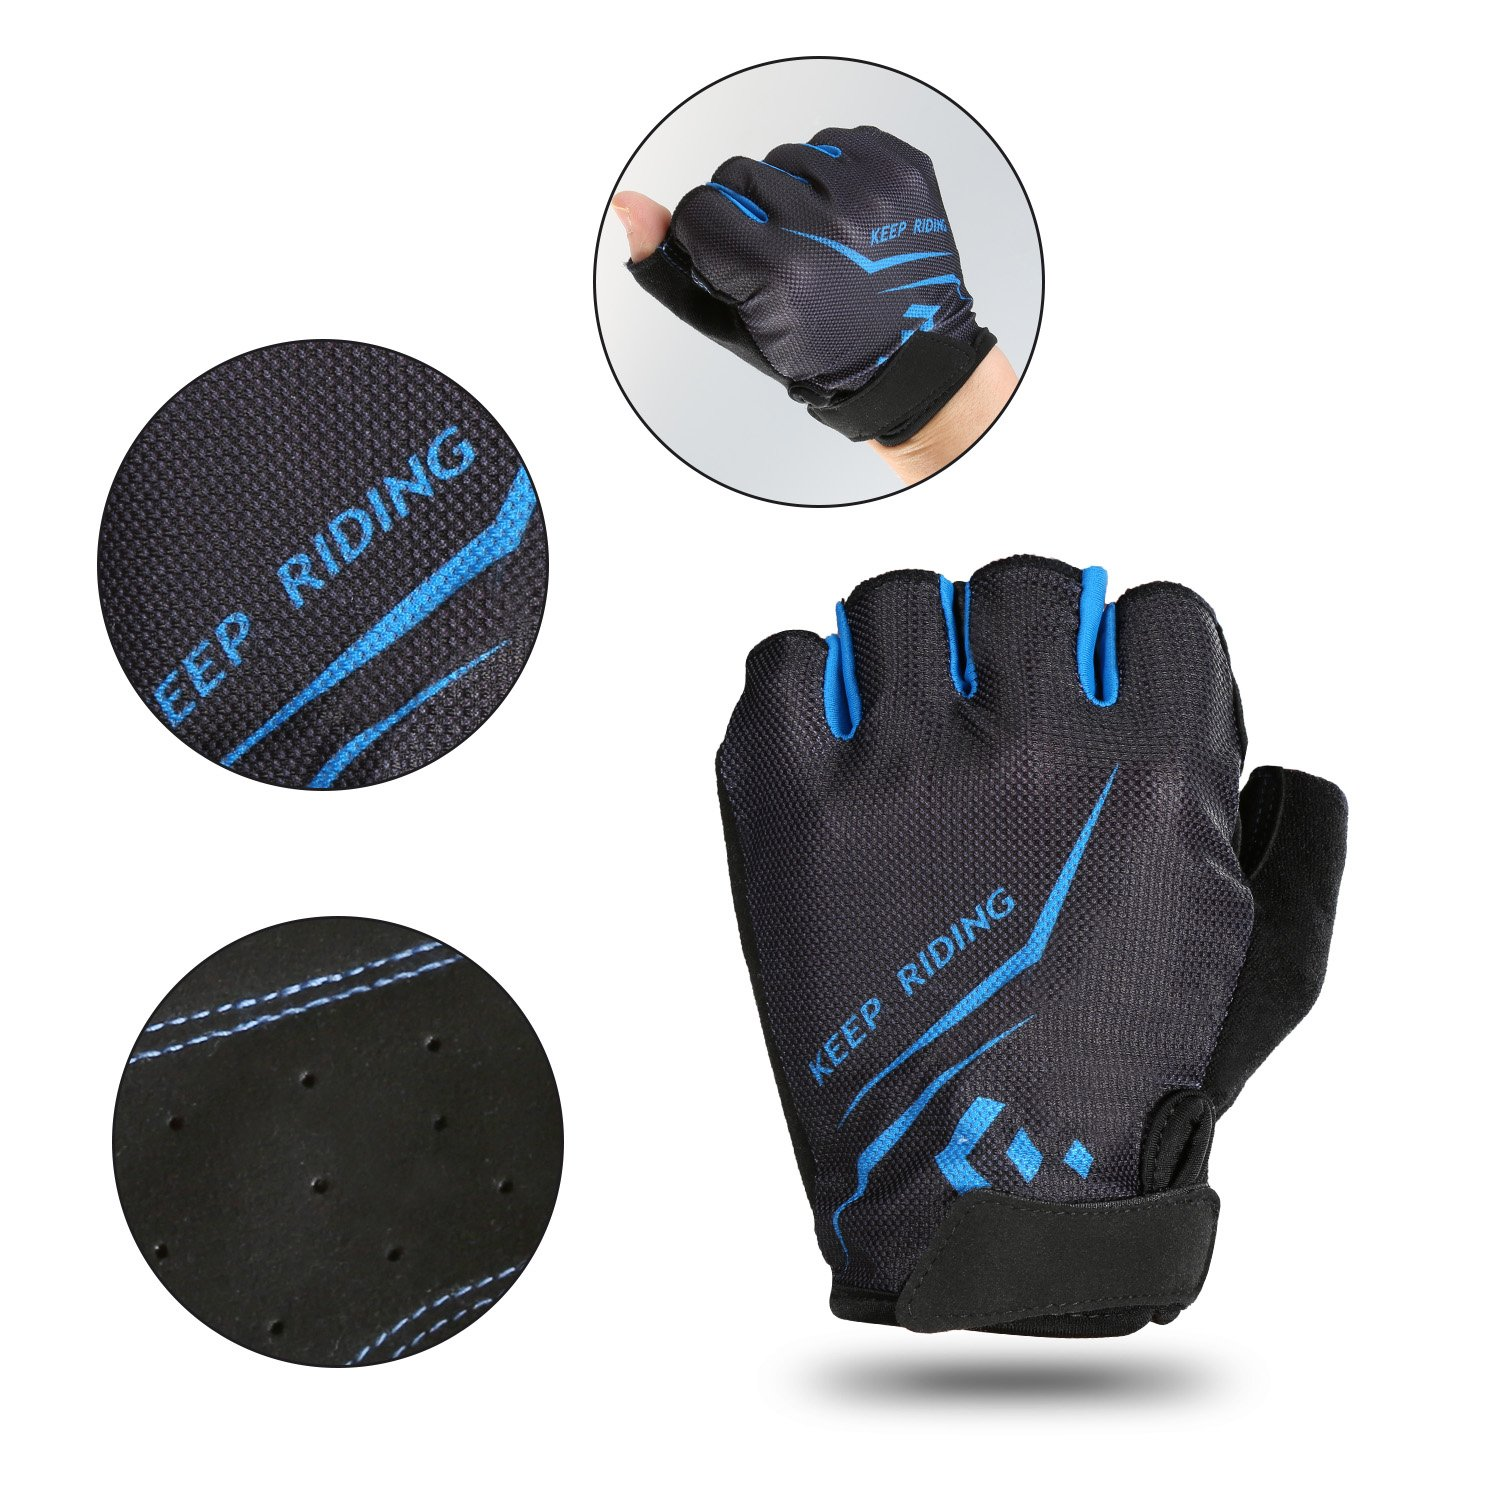 Outdoor Sports Riding Racing Equipment Cycling Gloves Hicool Summer Half Finger Breathable Biking Bicycle Gloves for Exercise